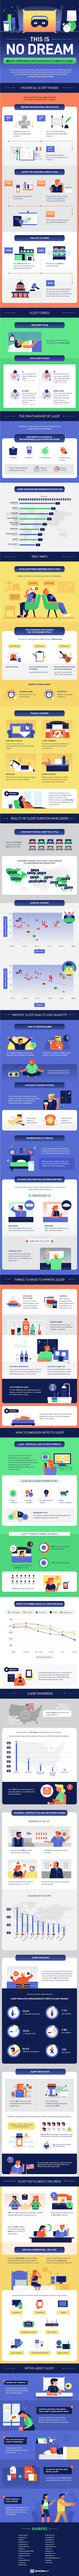 80 Eye-Opening Stats & Facts About Sleep #infographic